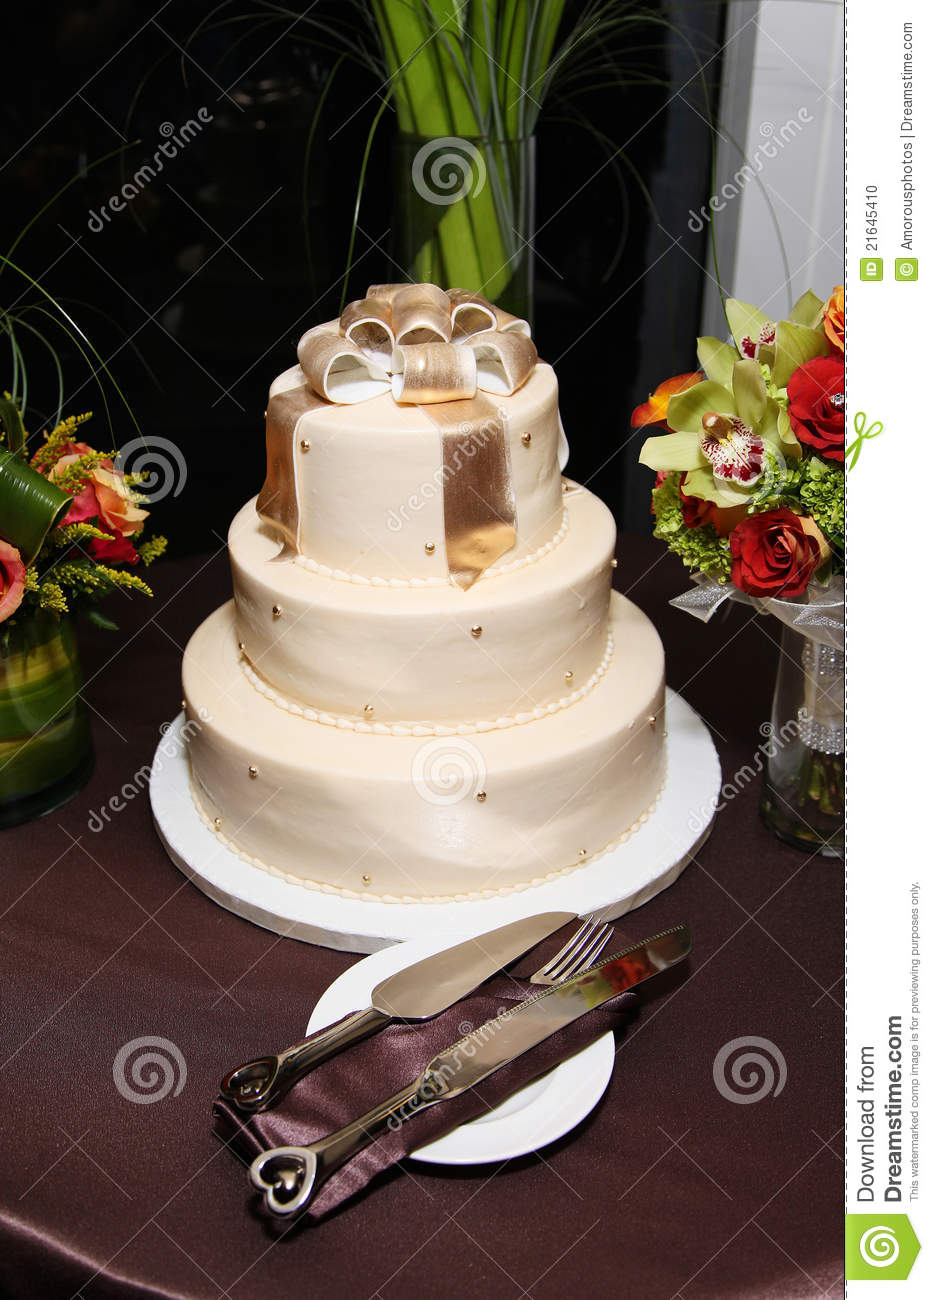 Wedding Cake With Gold Bow Topper Modern Classy Stock